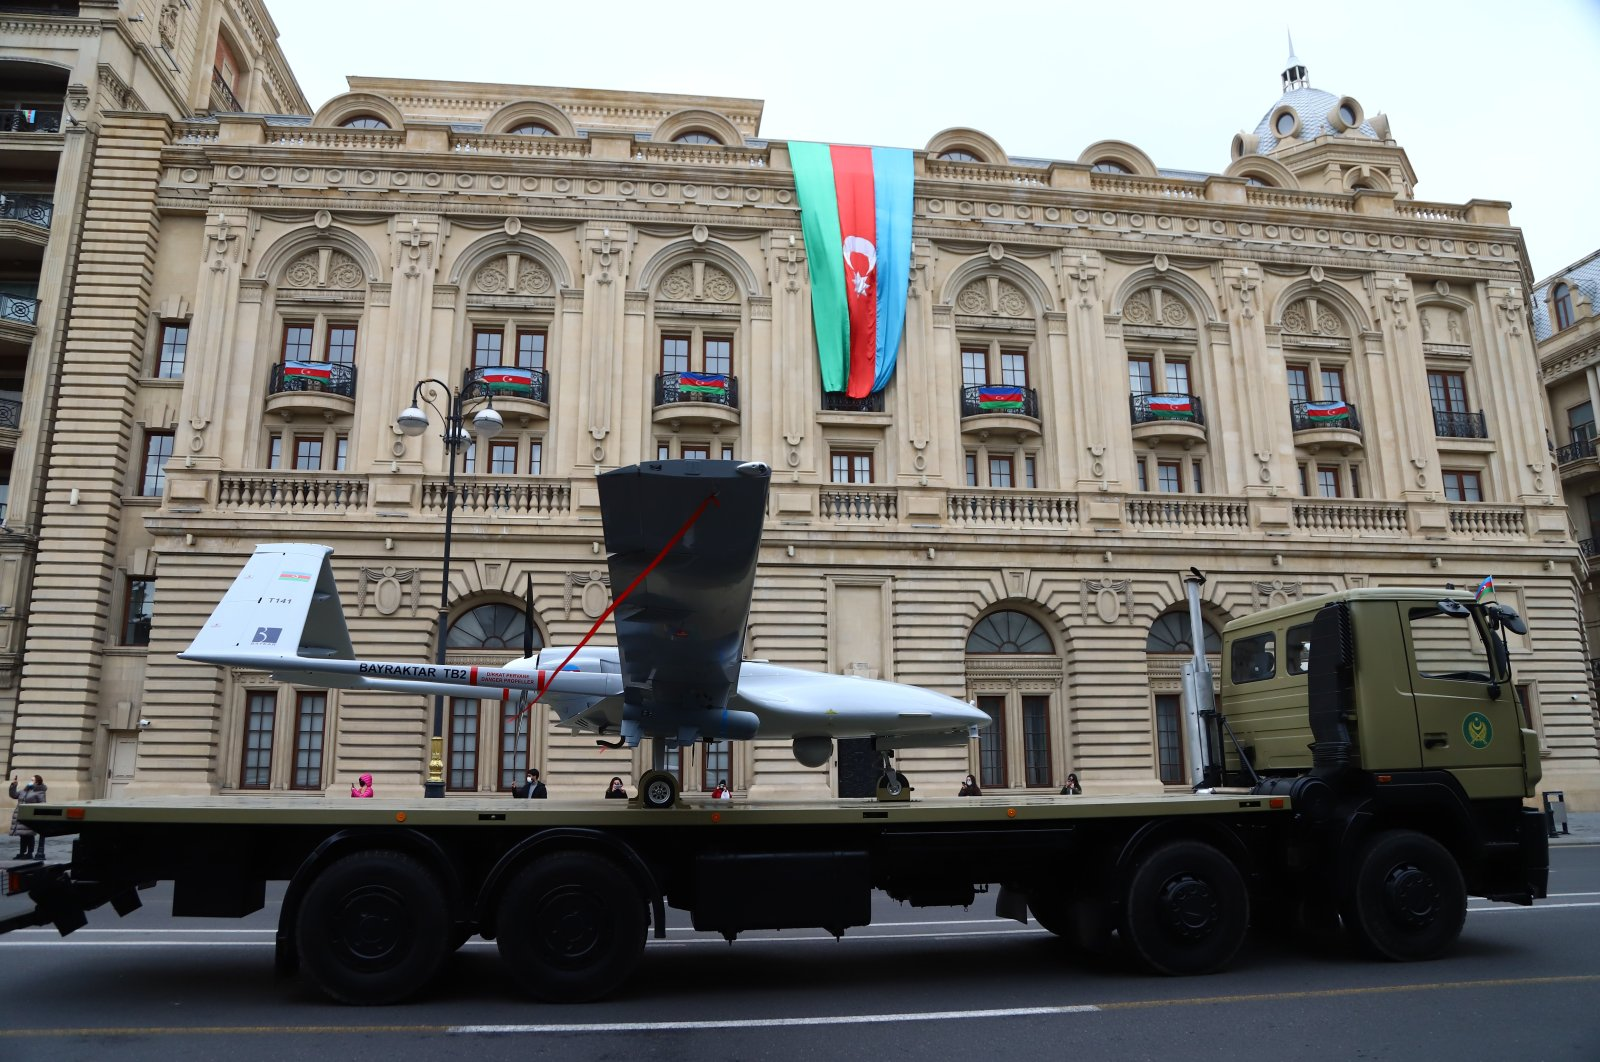 An Azerbaijani army Bayraktar TB2, a medium-altitude, long-endurance combat unmanned aerial vehicle, is displayed during a military parade to mark the victory in the Nagorno-Karabakh conflict, in Baku, Azerbaijan, Dec. 10, 2020. (AA Photo)